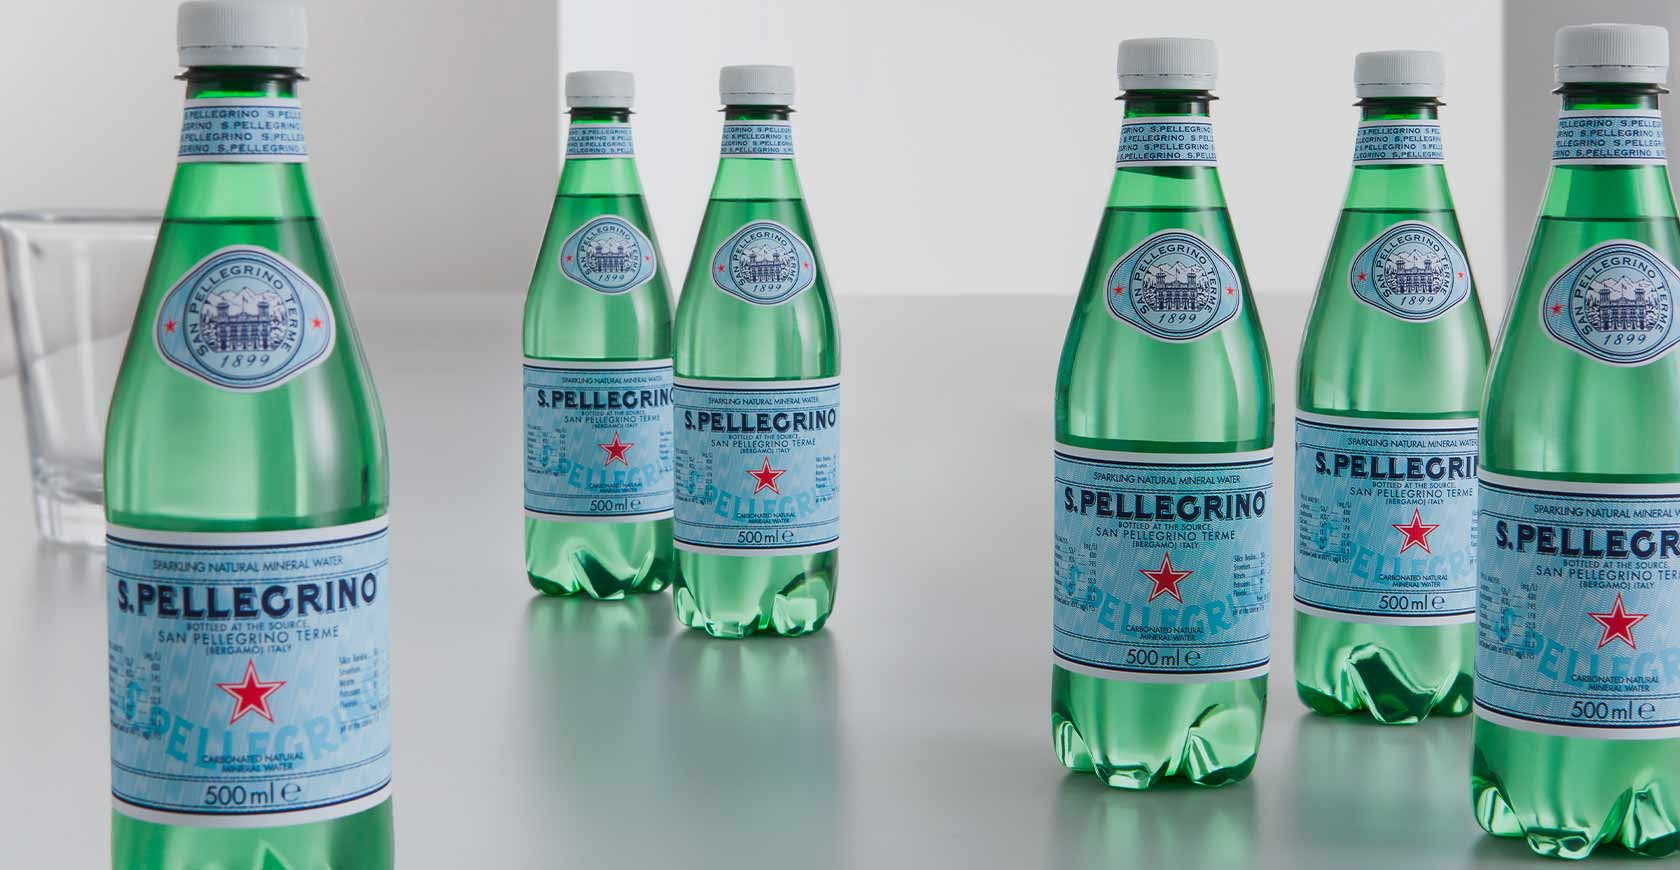 Discover the sustainability of San Pellegrino packaging